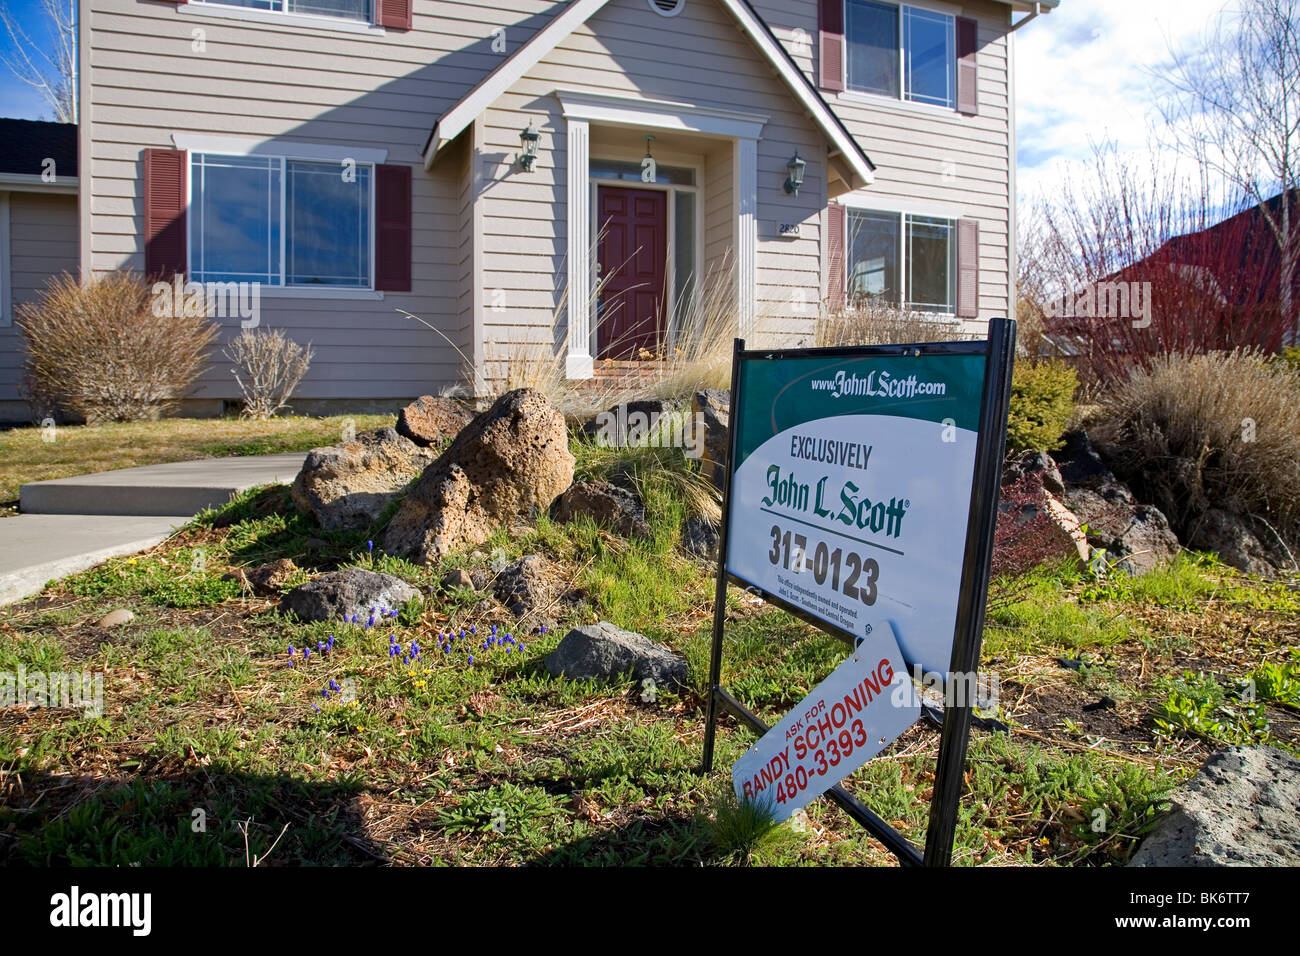 Abandoned homes for sale that have been foreclosed on by a local bank, in Bend, Oregon - Stock Image